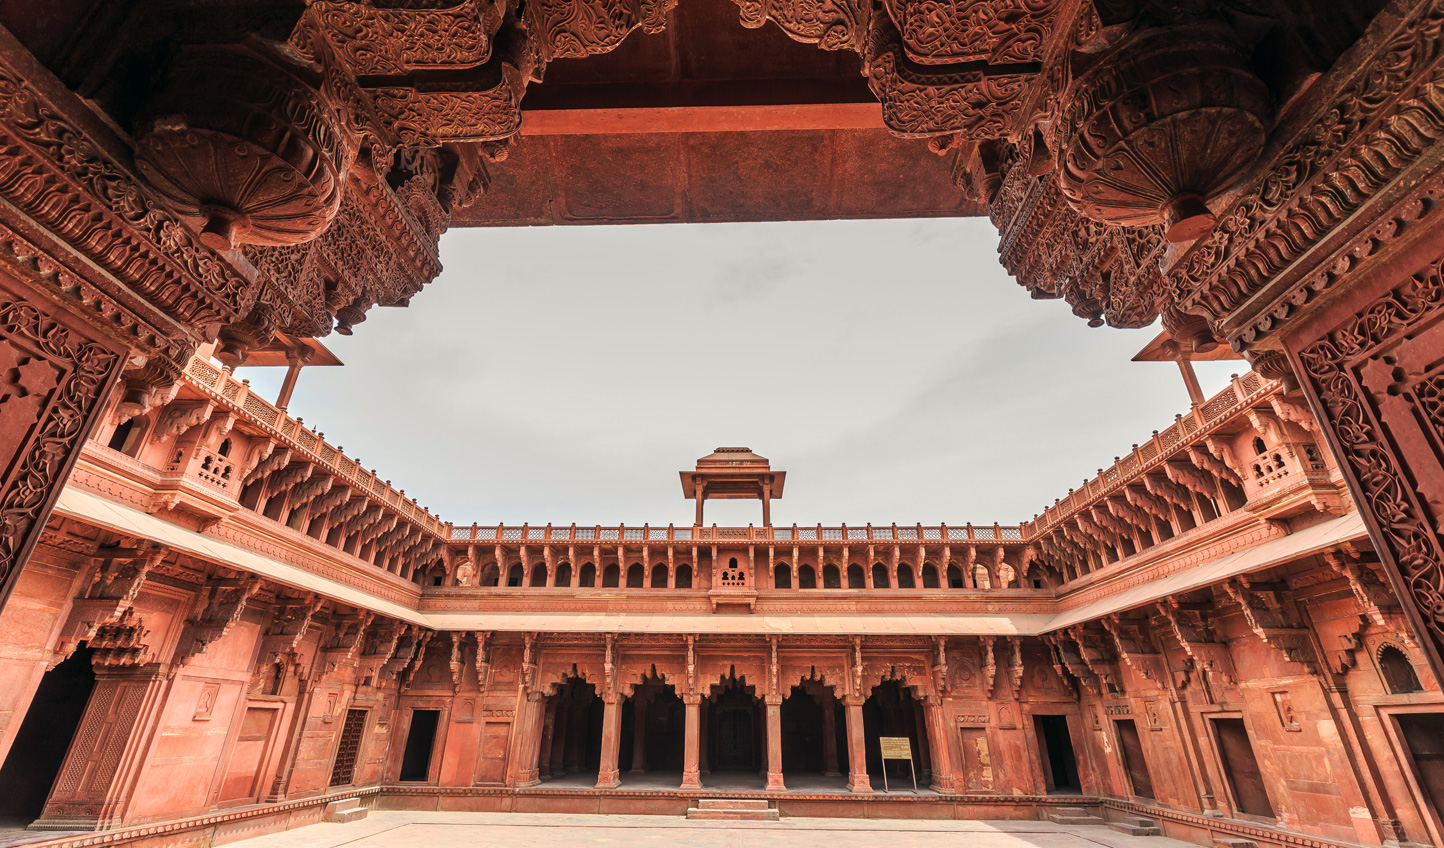 Explore the architectural wonder of Agra Fort on a private tour